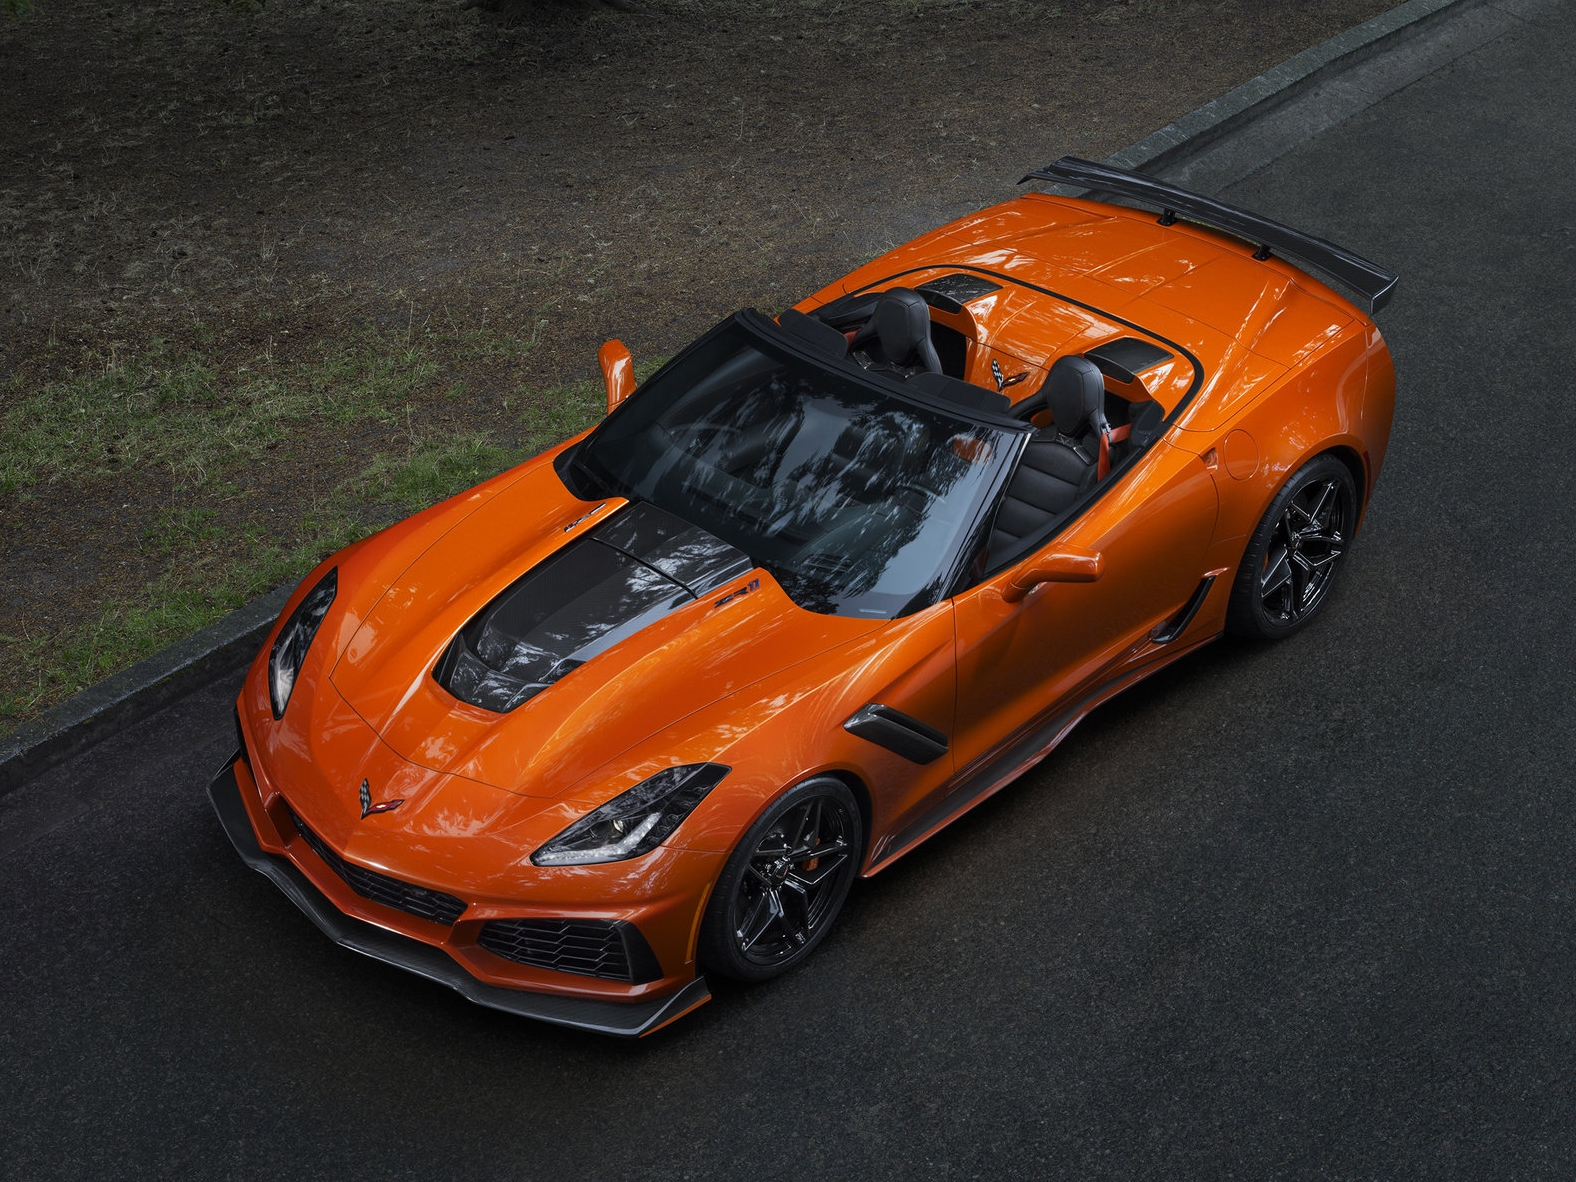 The ZR-1 convertible is so aggressive and full of tuner-esque add-ons that it's hard to take seriously on a global level.